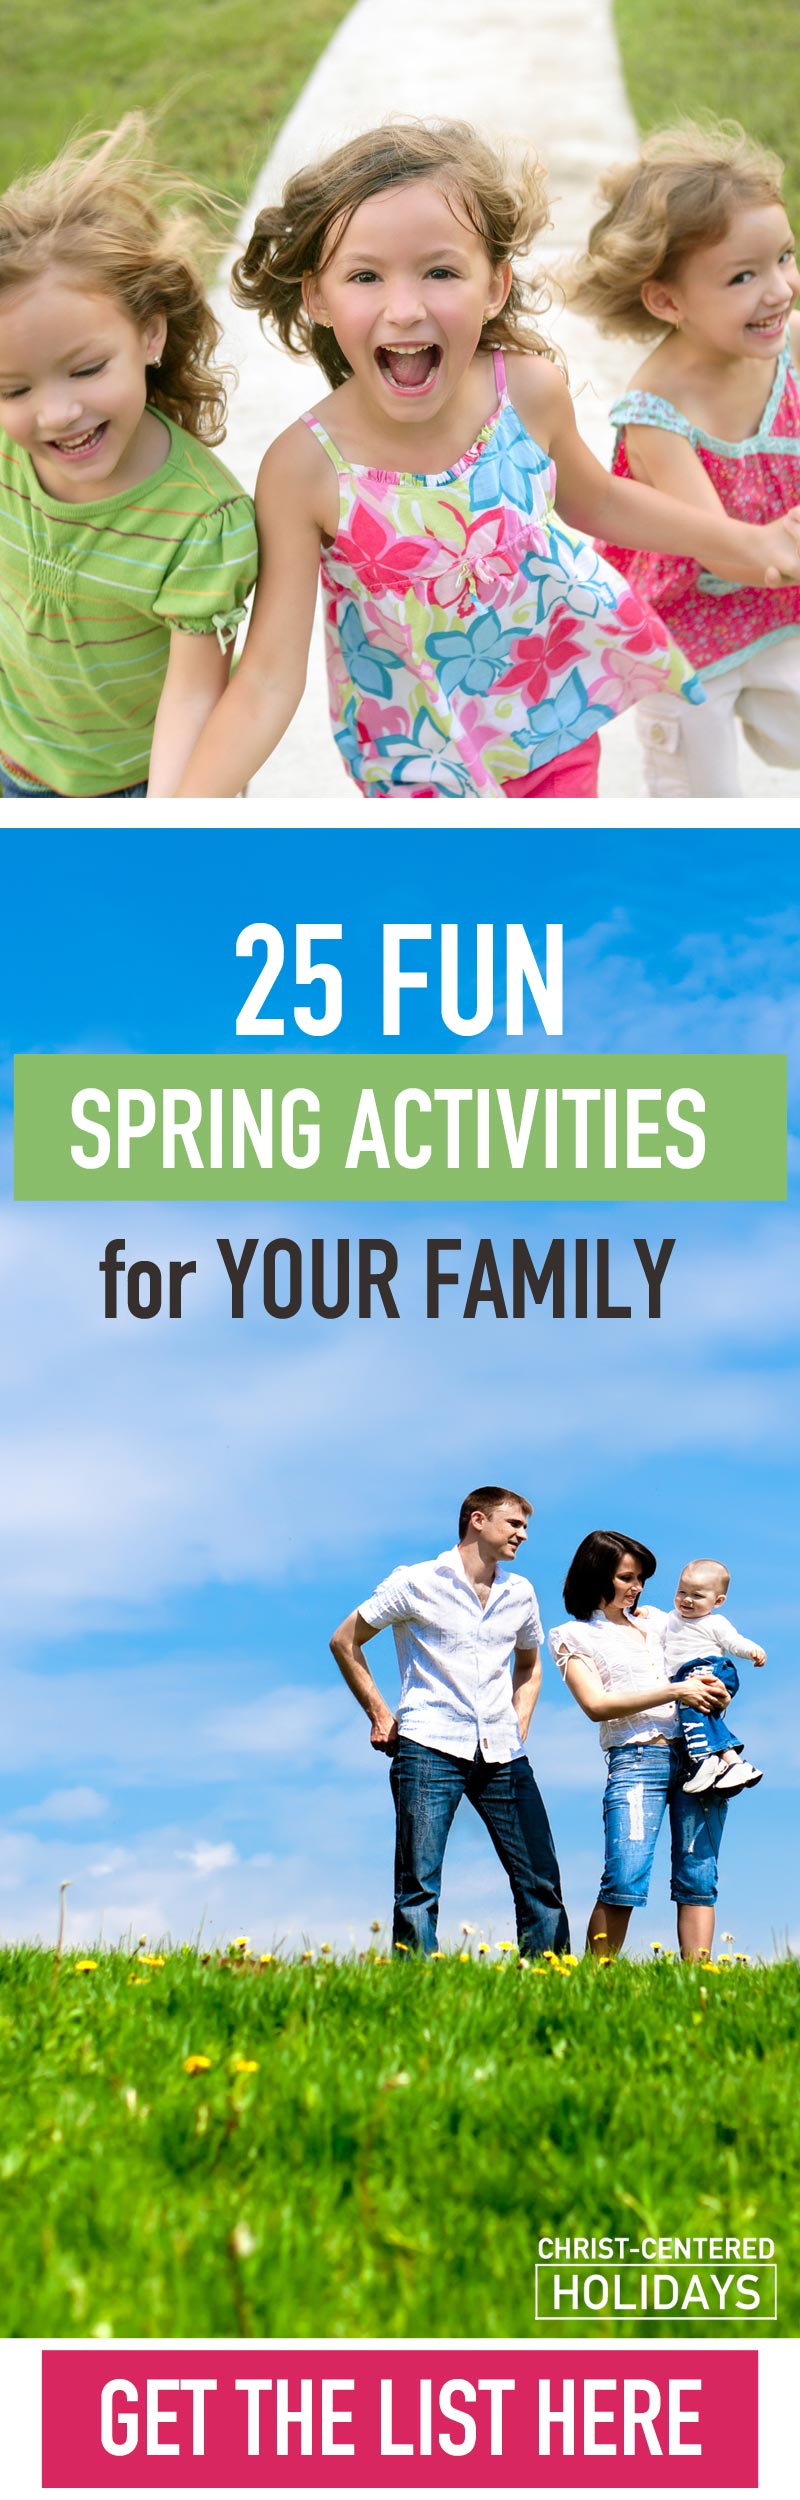 Our family loves spring kids activities! In spring, our family loves to be outside in nature, which means park days, hikes and beach days. But unless we're intentional about these springtime activities (including Easter activities for kids), like all things, these spring family activities can get pushed to the side if we're not intentional about doing them.